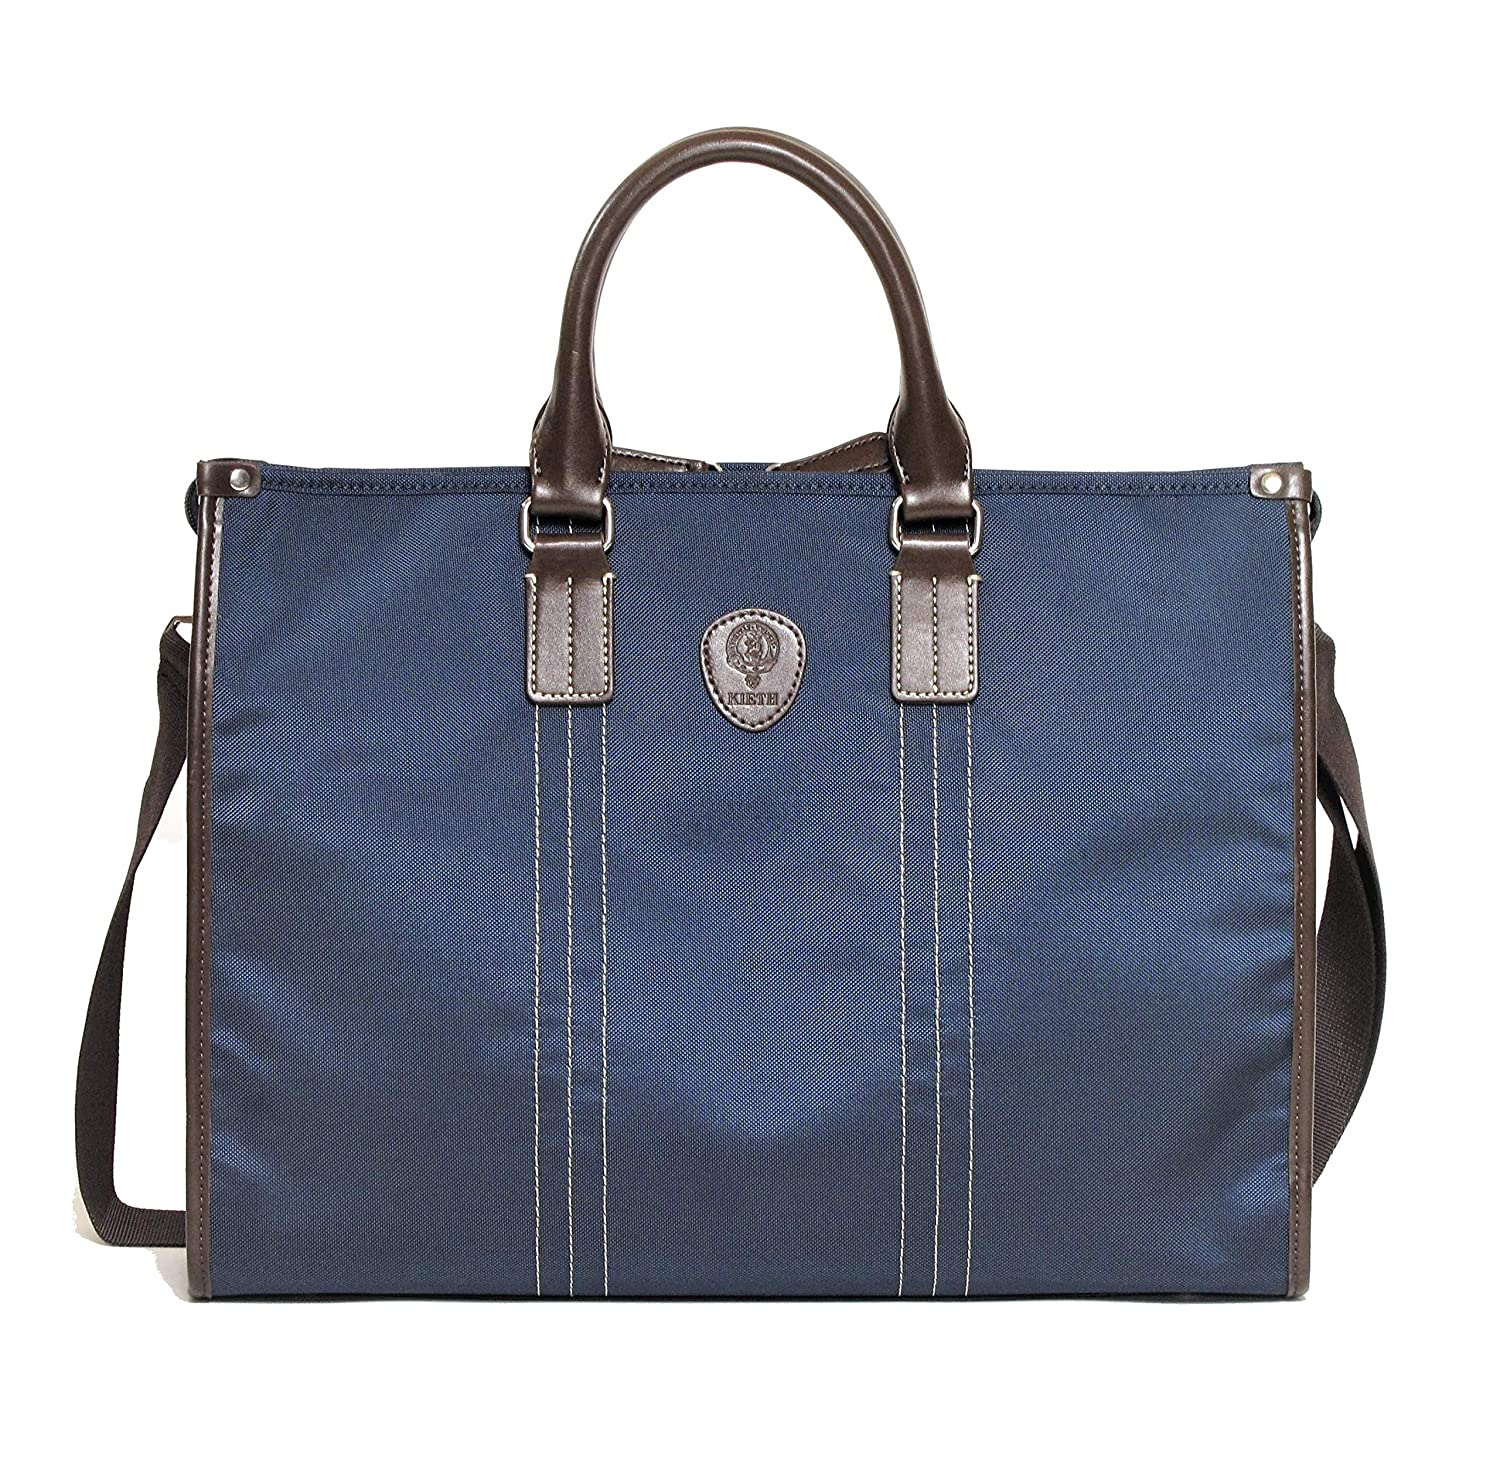 One Size Ben Sherman Laptop Bag in Charcoal